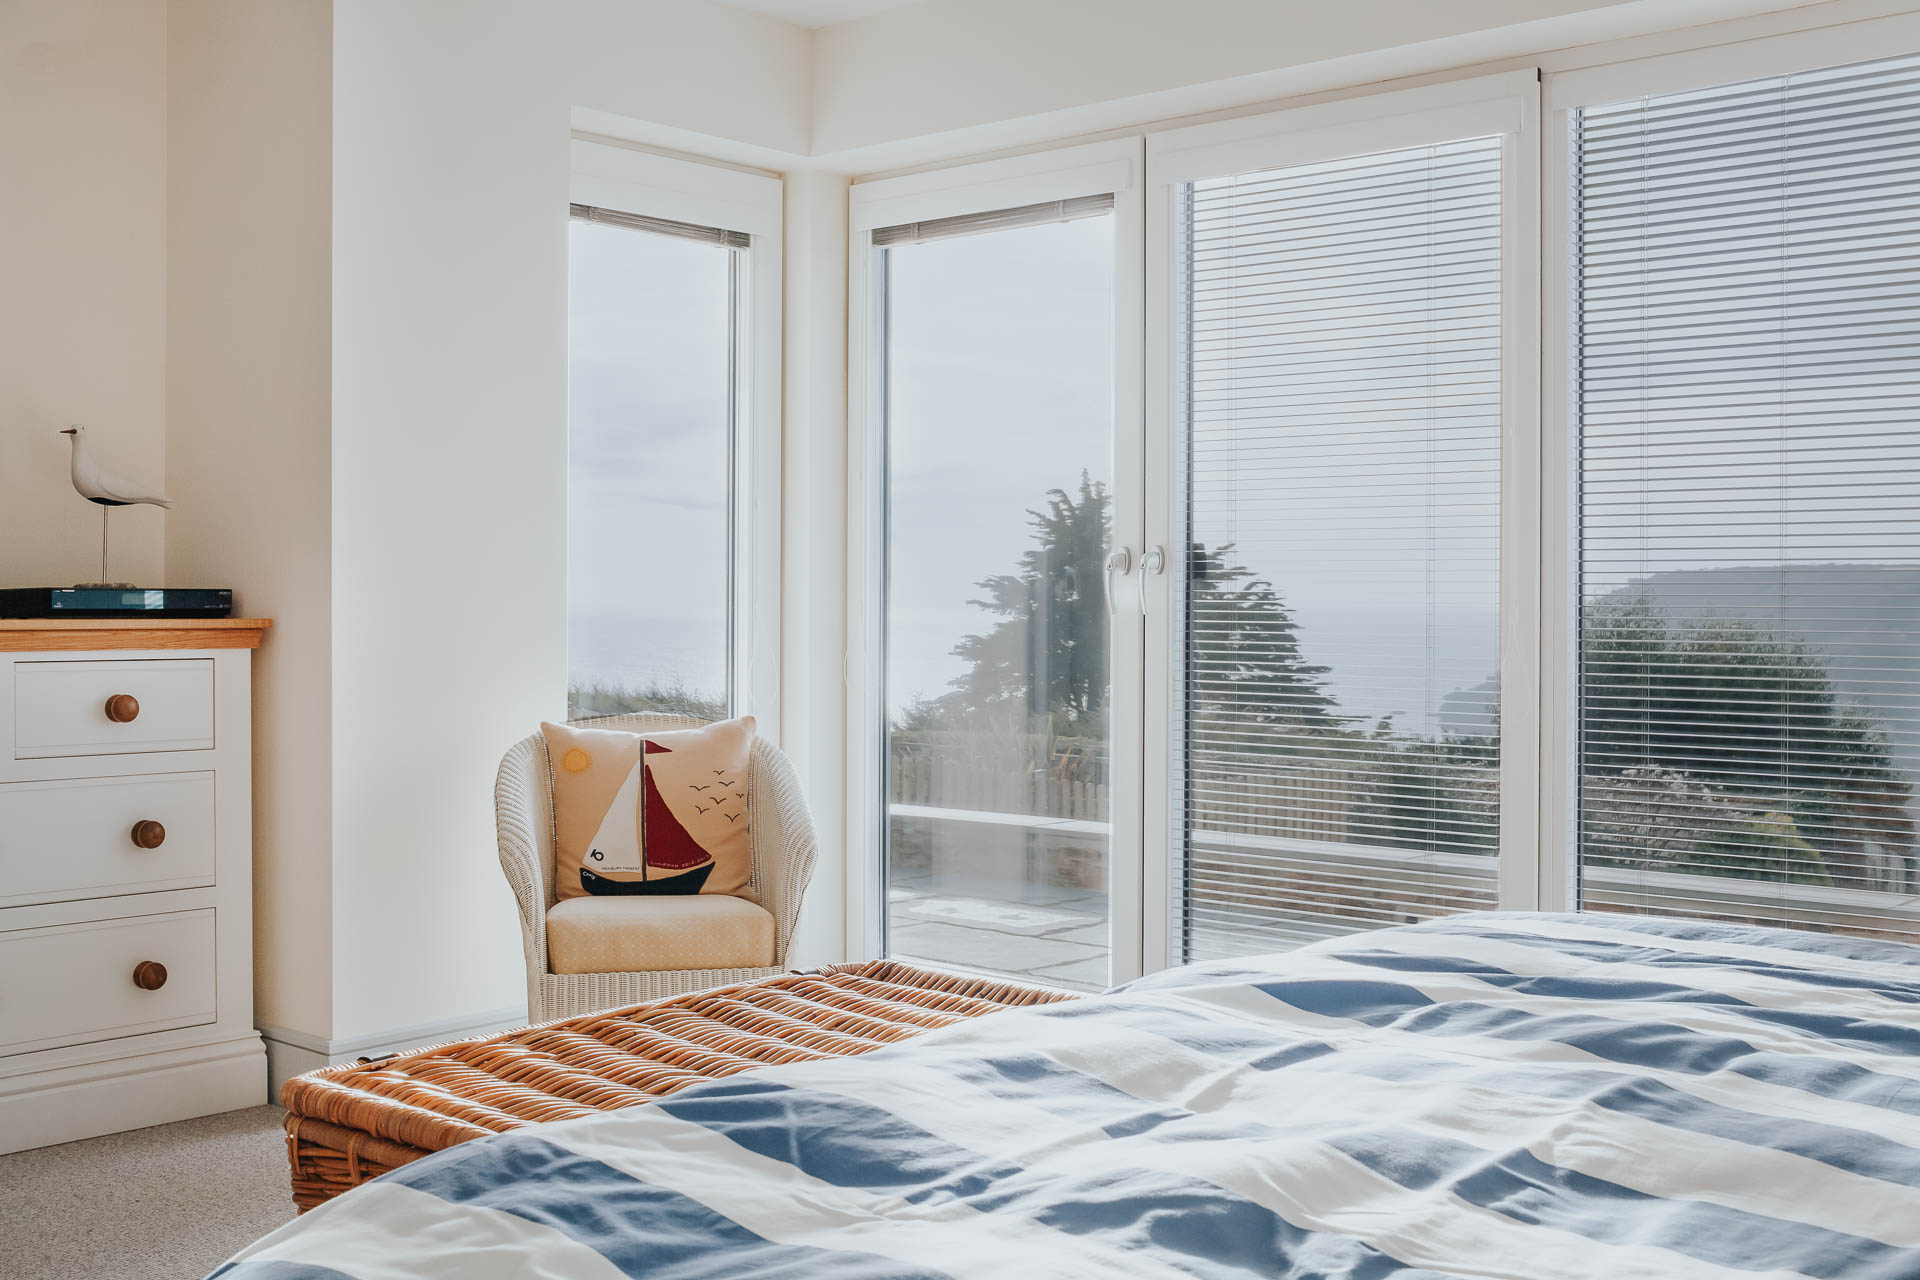 corner window to bedroom with integral venetian blinds